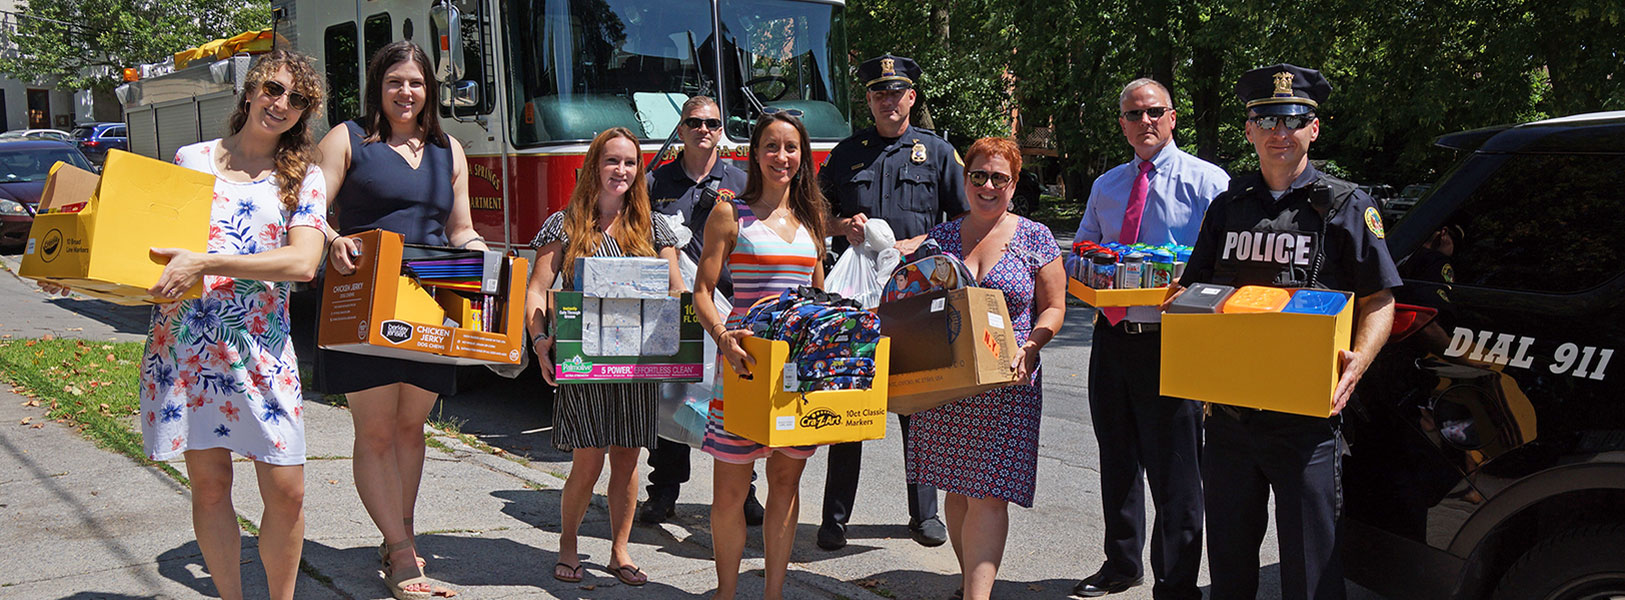 Saratoga Police, Fire Department and Community members holding boxes of donated supplies for Franklin Comunity Center